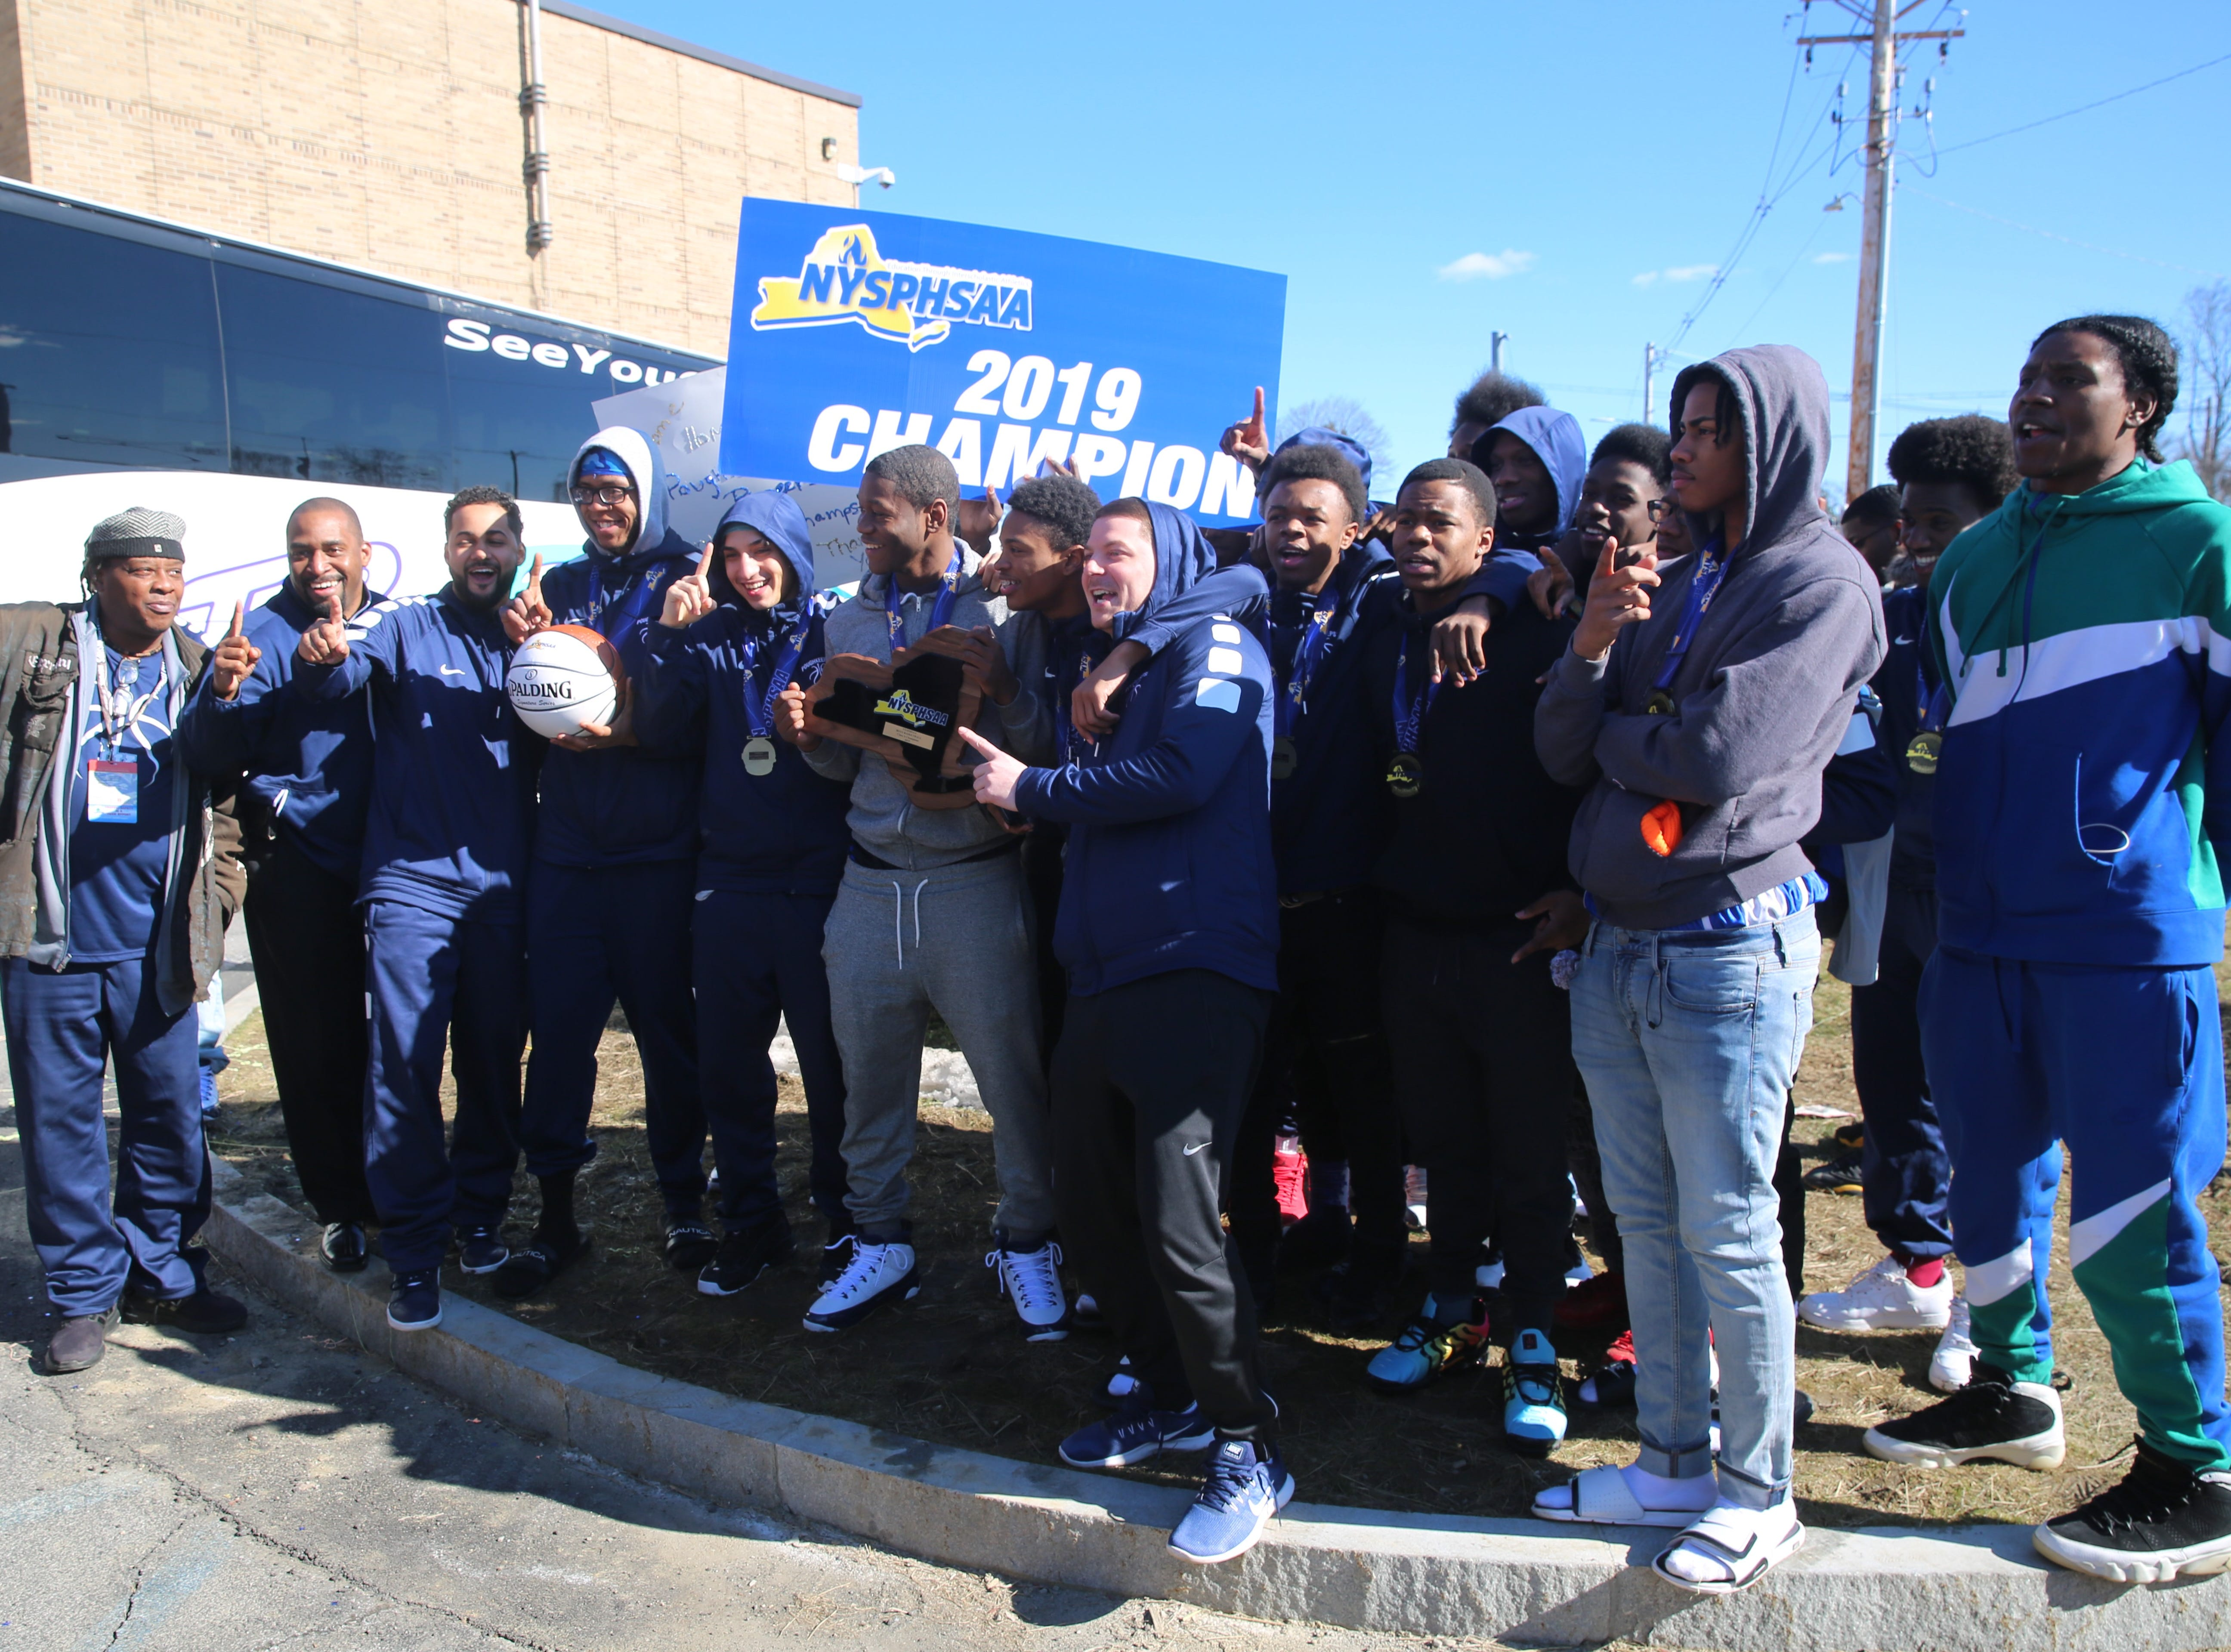 A scene from the celebration at Poughkeepsie High School on Sunday welcoming back members of the boys basketball team who captured the school's first state title since 1995 on Saturday night.